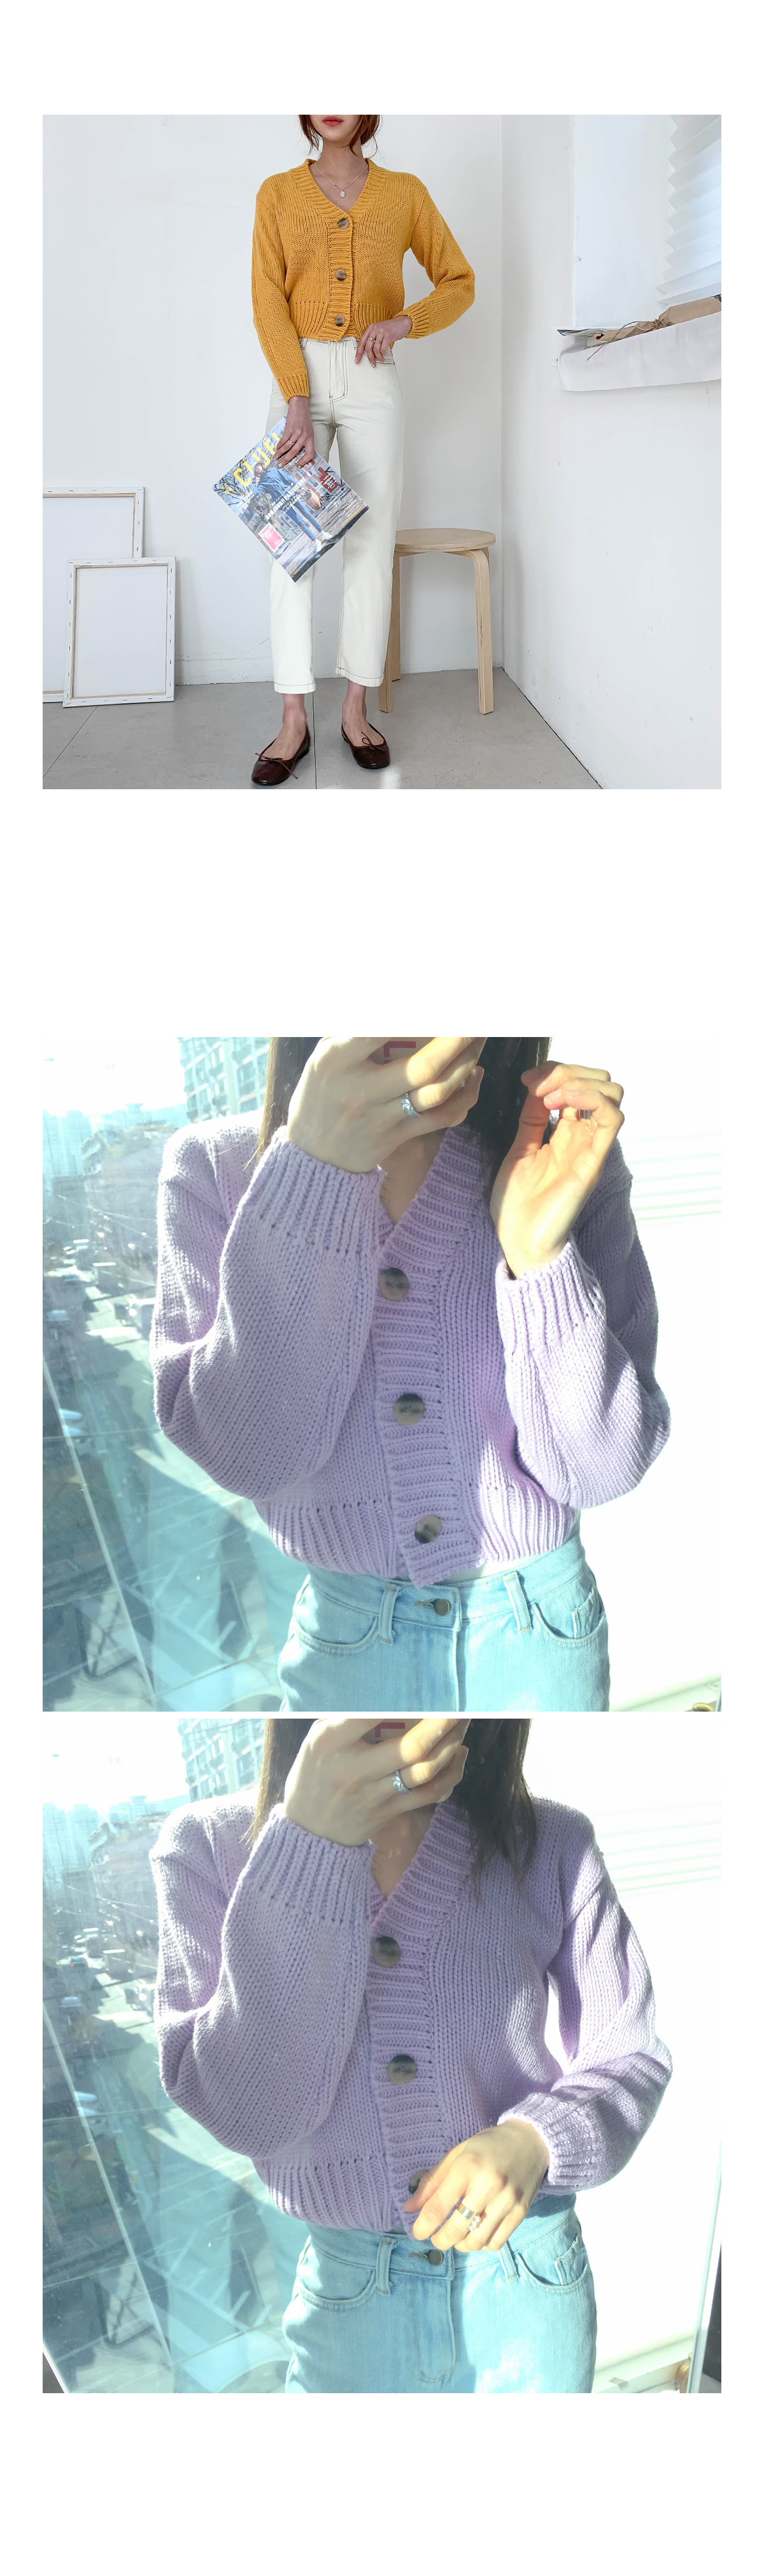 Vibe Knit Short Cardigan